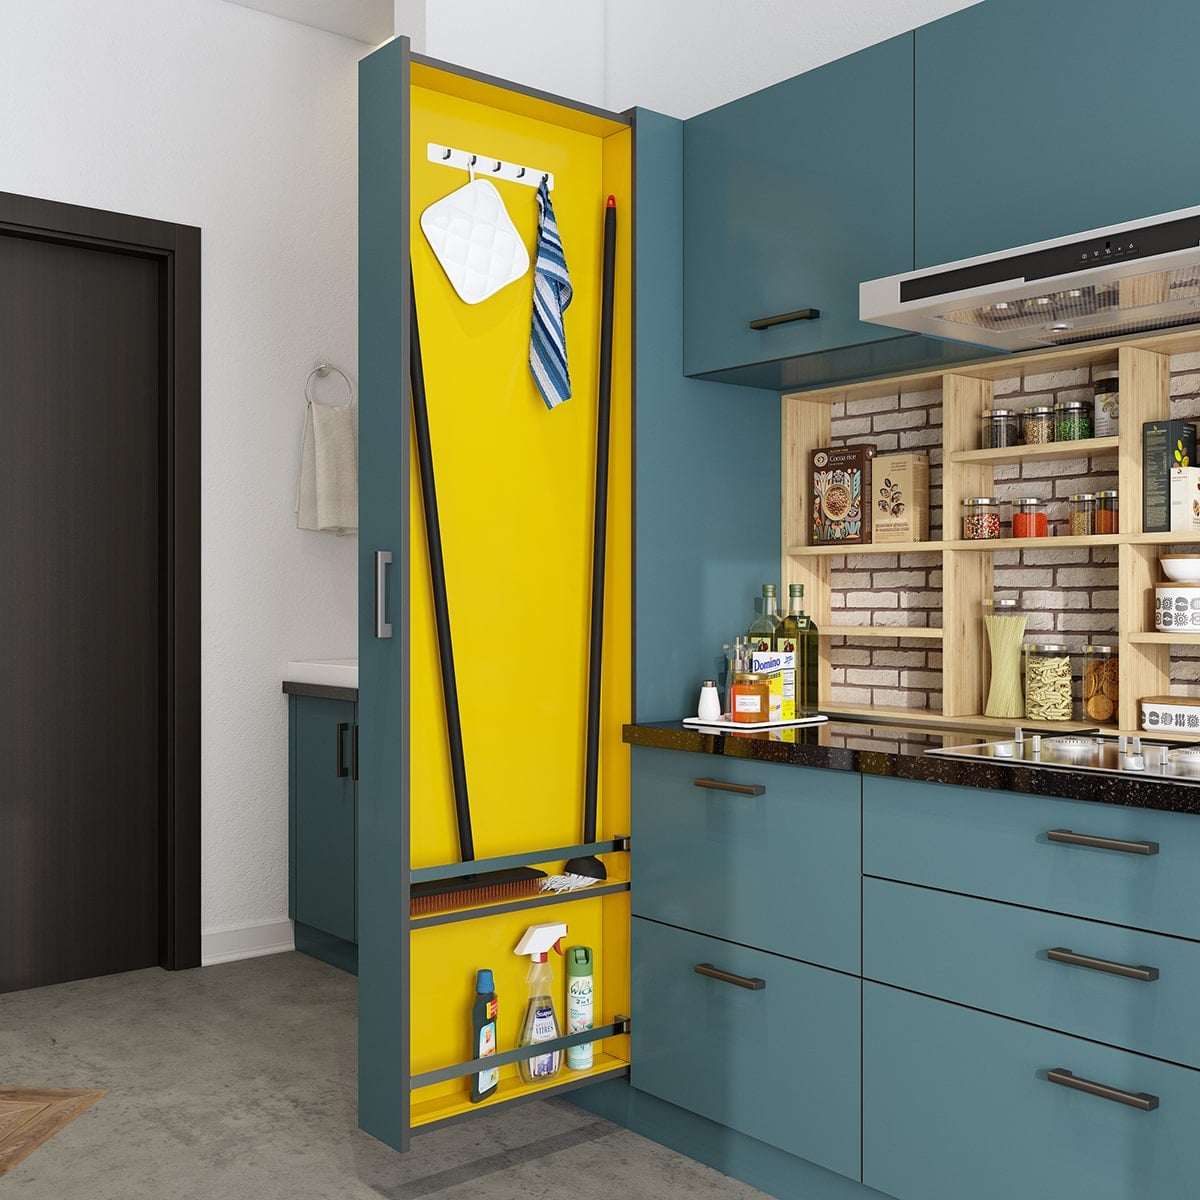 Kitchen Space Saving Janitor Pull Out Unit in simple kitchen design for small space